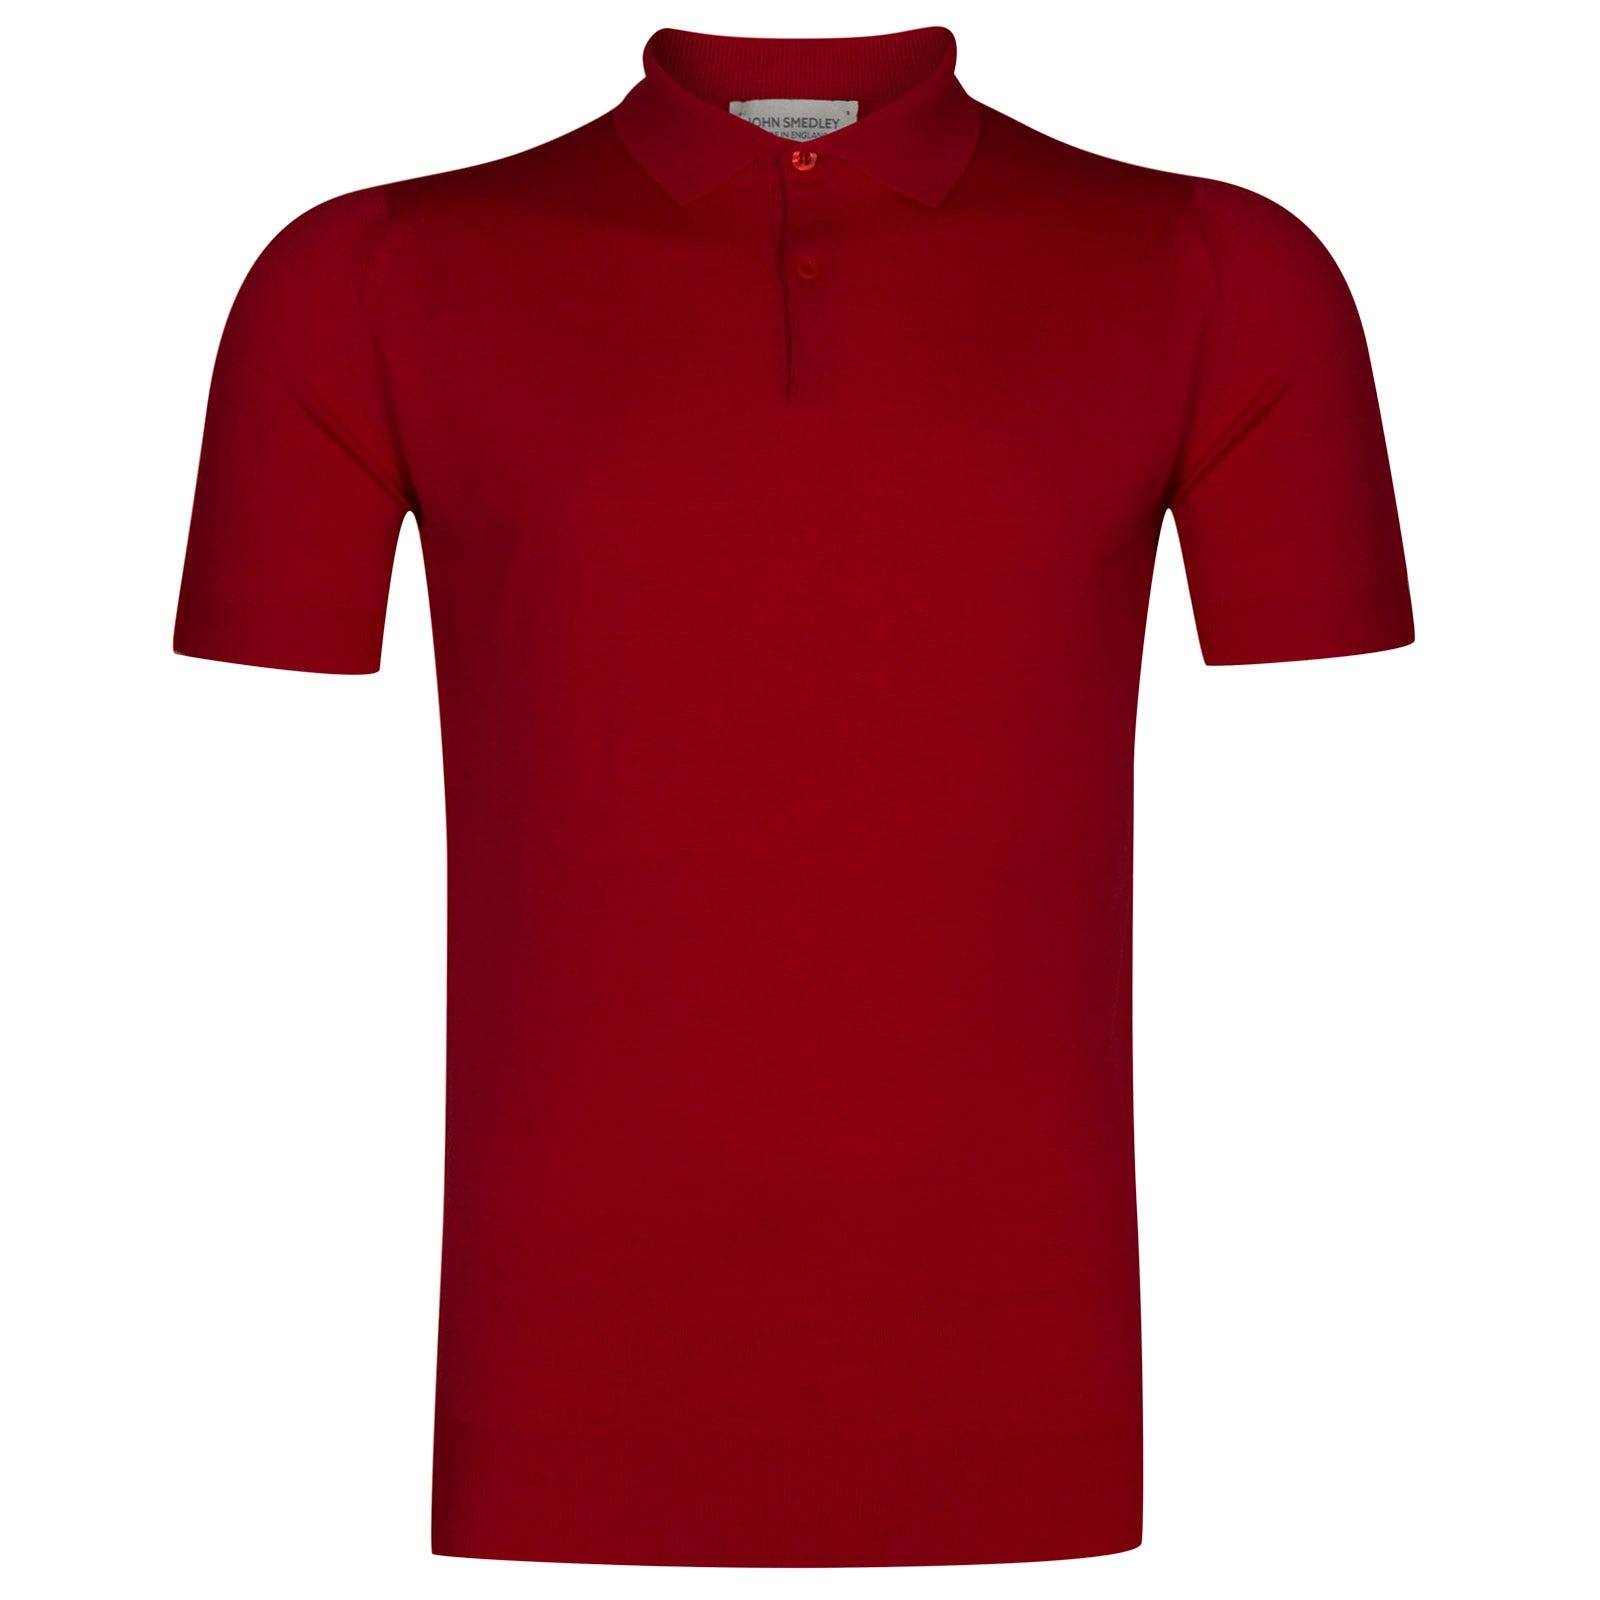 John Smedley Payton Merino Wool Shirt in Dandy Red-XXL